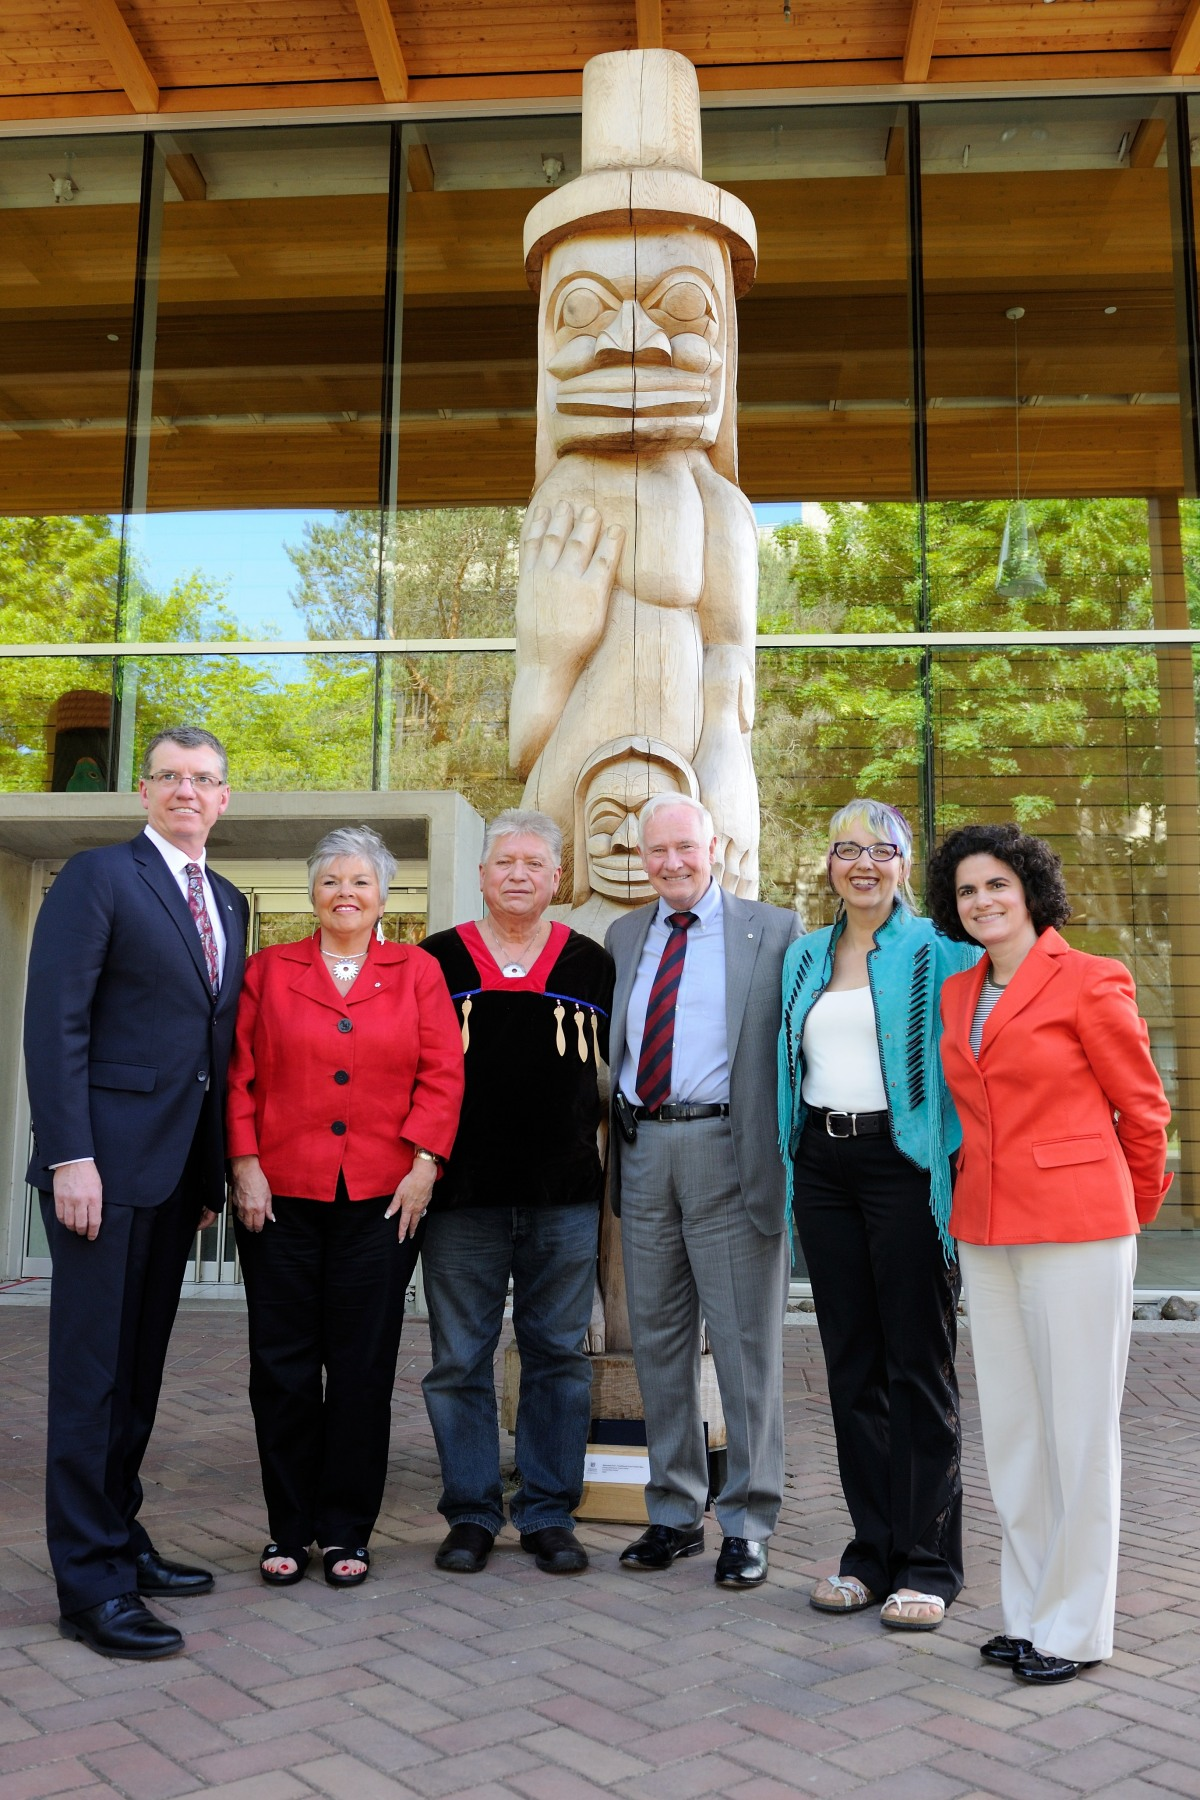 His Excellency posed with the panelists from the discussion on community-campus collaborations in Aboriginal communities.